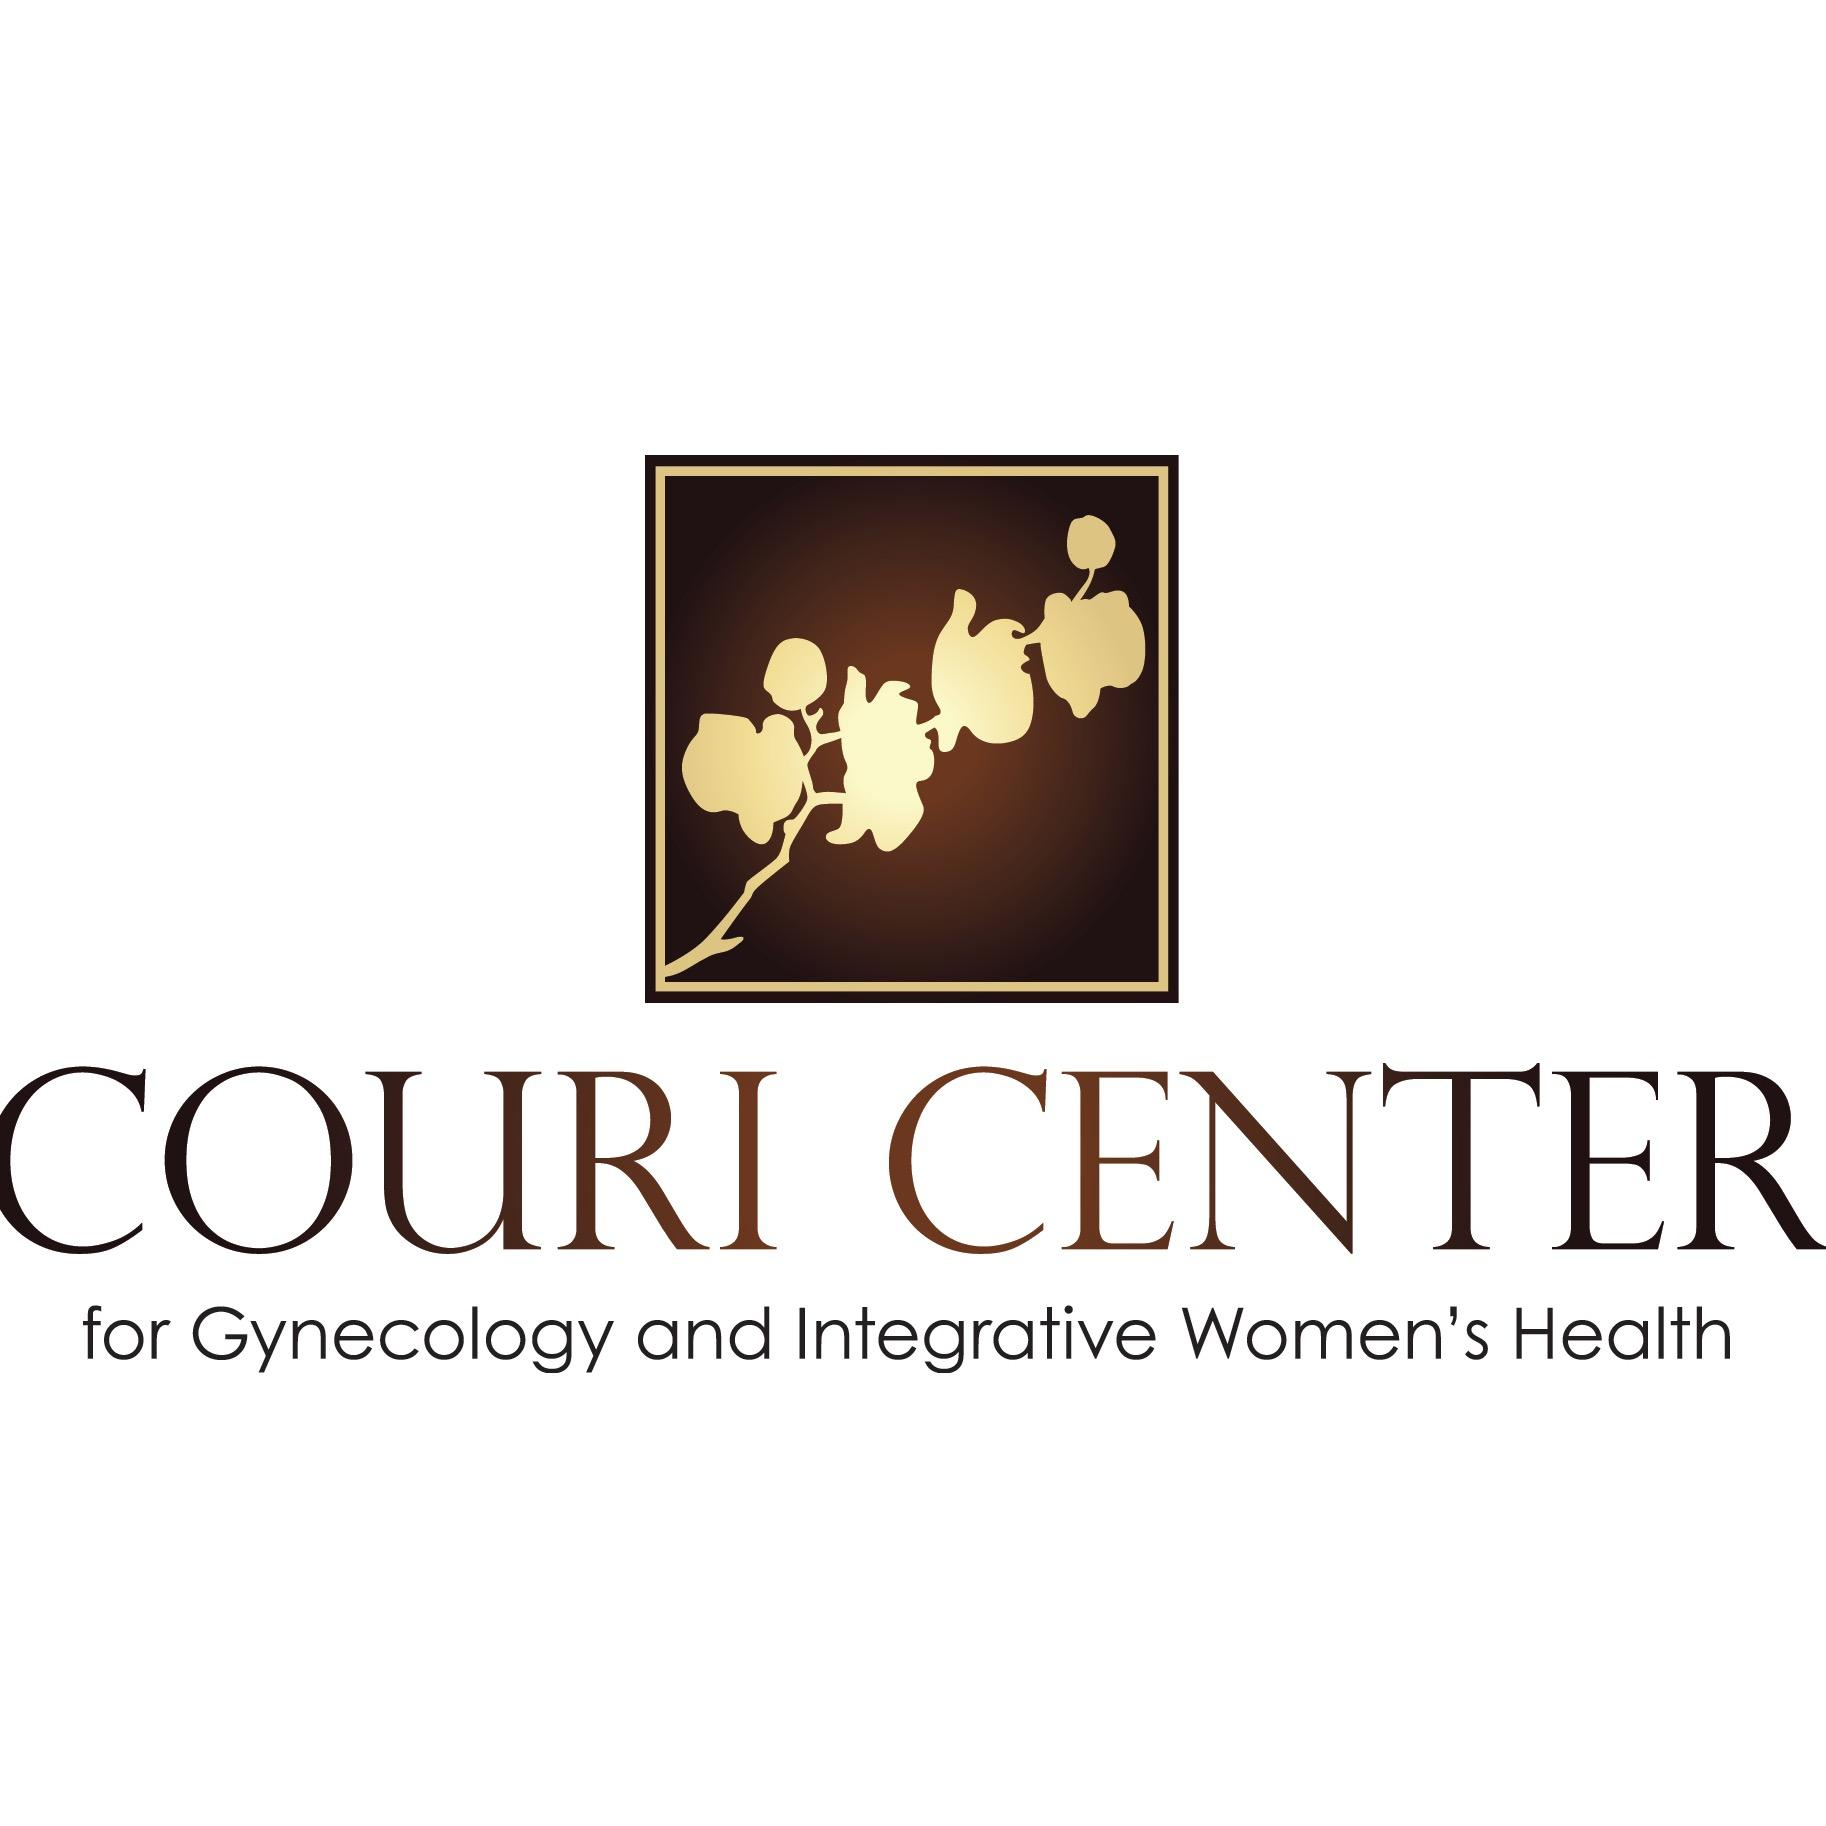 Couri Center for Gynecology and Integrative Women's Health image 10